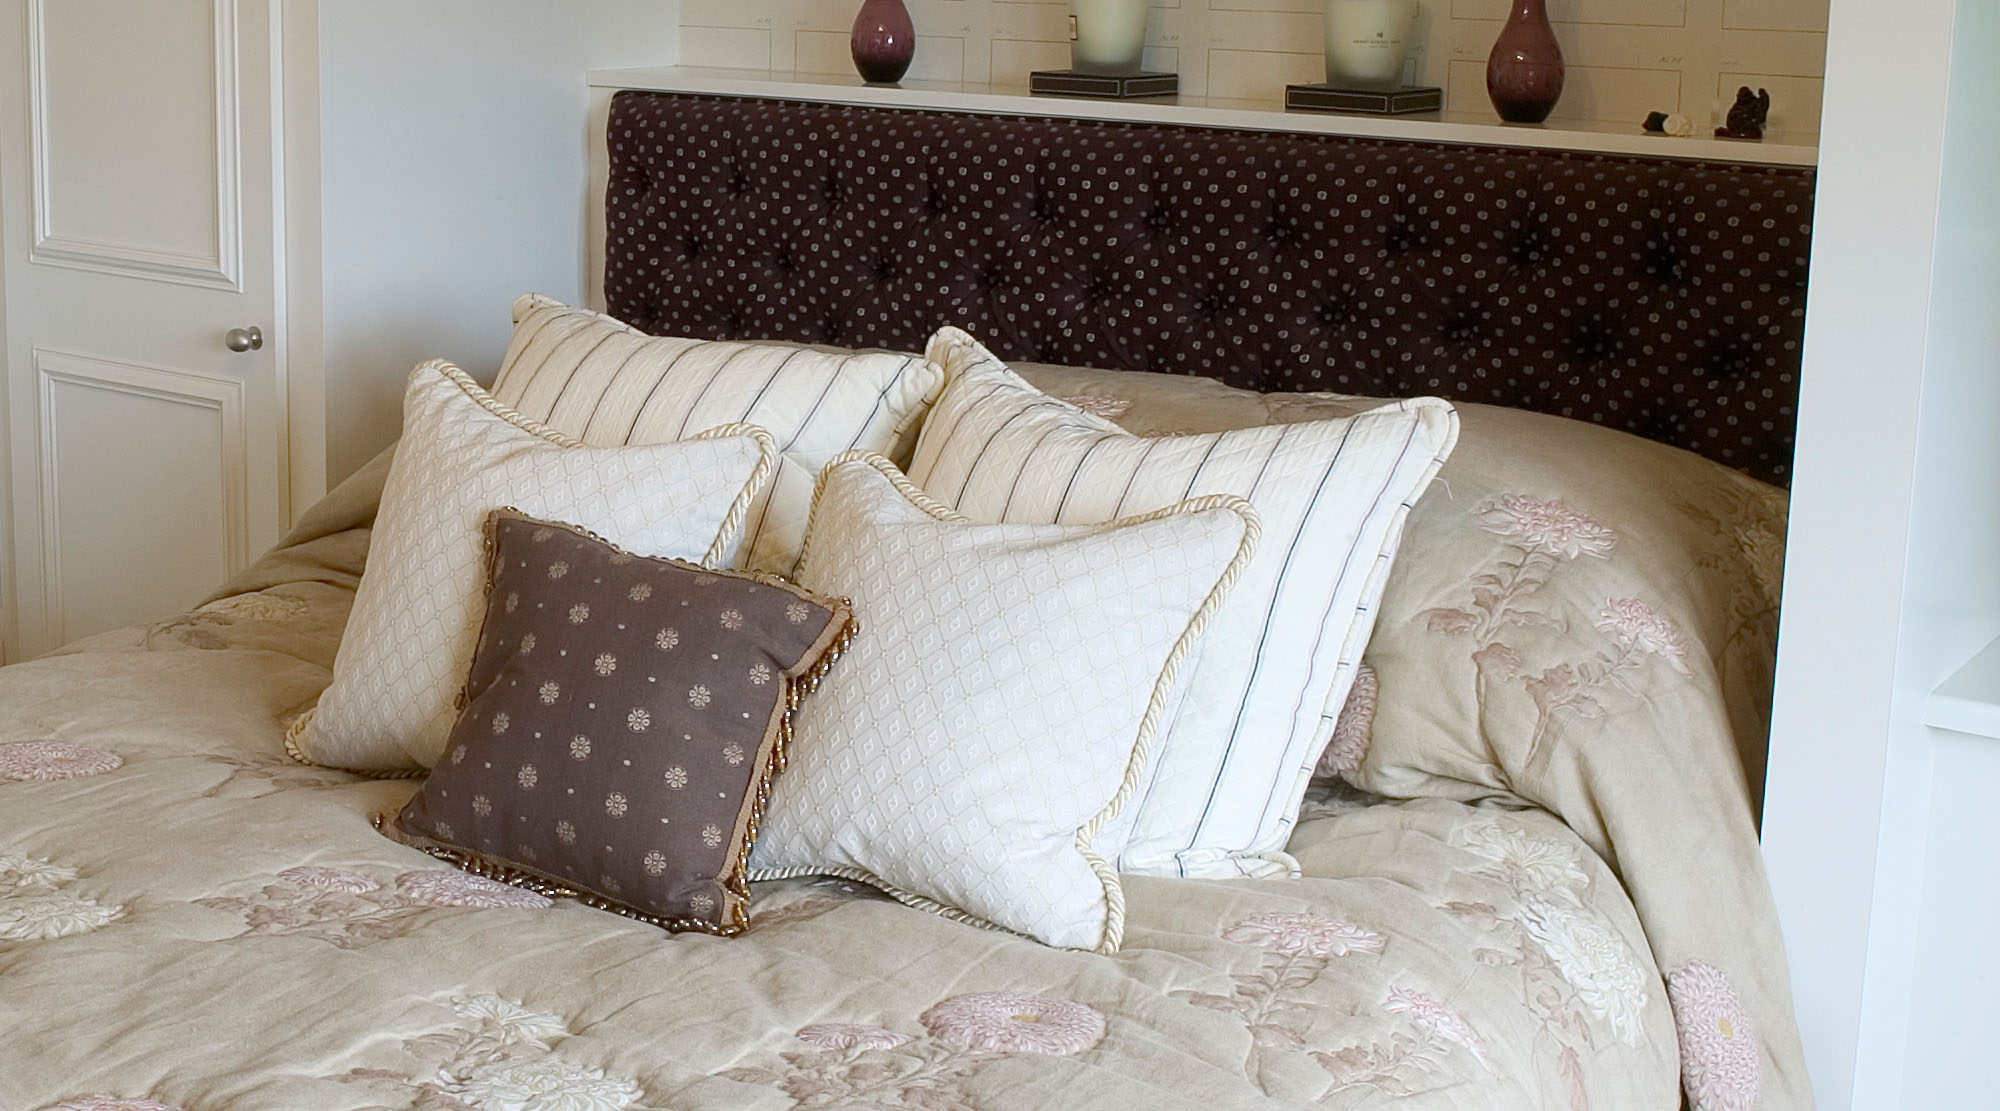 Bedroom in shades of cream and brown